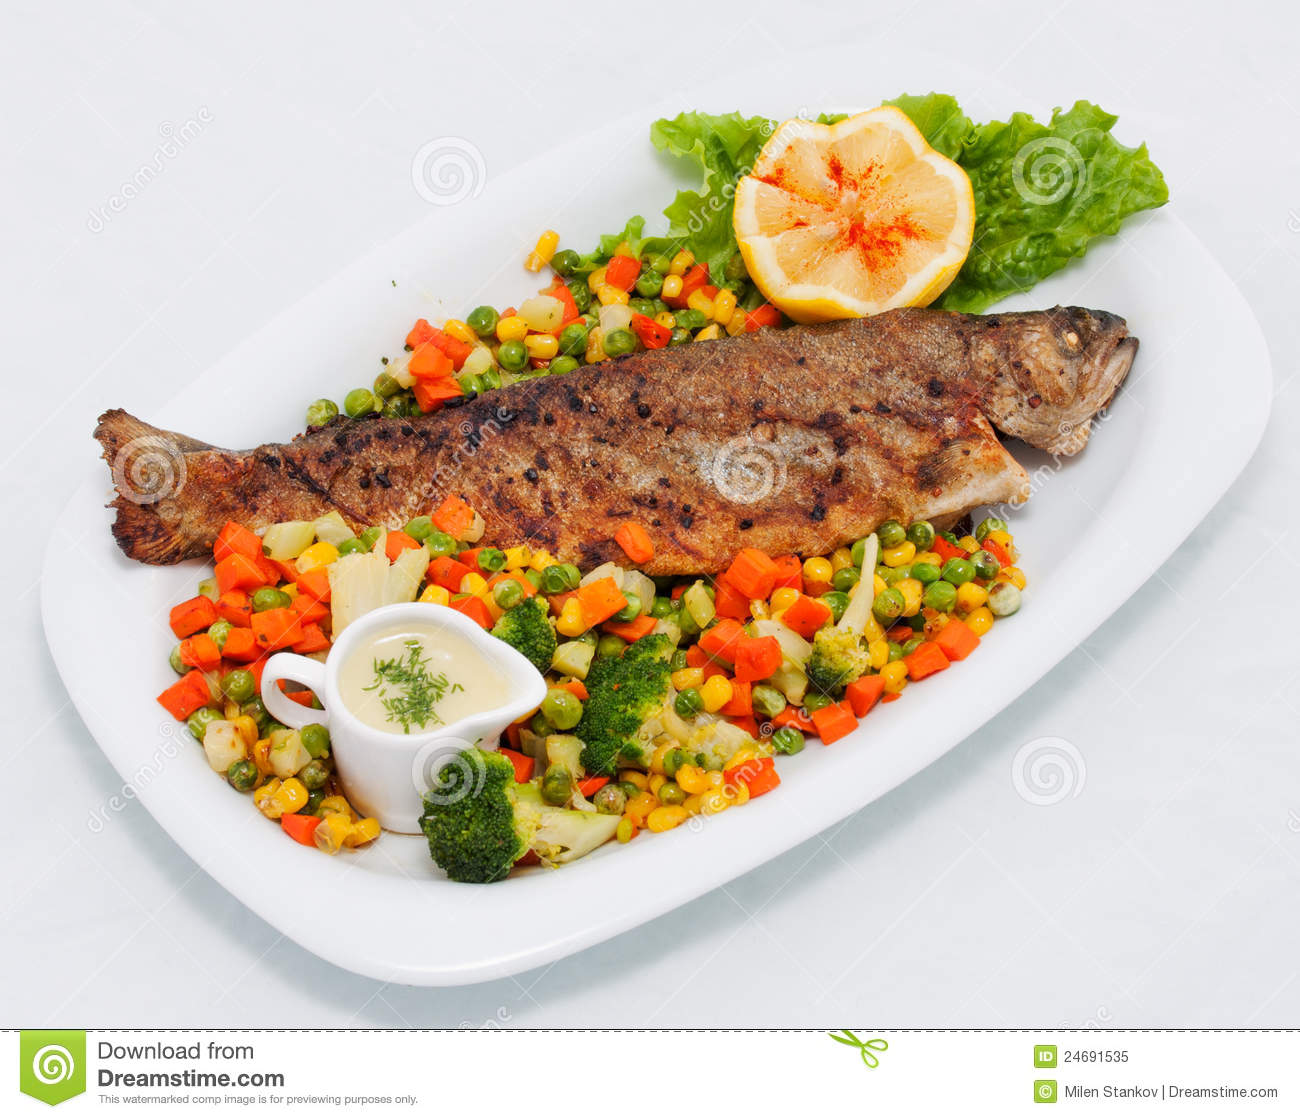 Roasted fish with vegetables royalty free stock photo for What vegetables go with fish